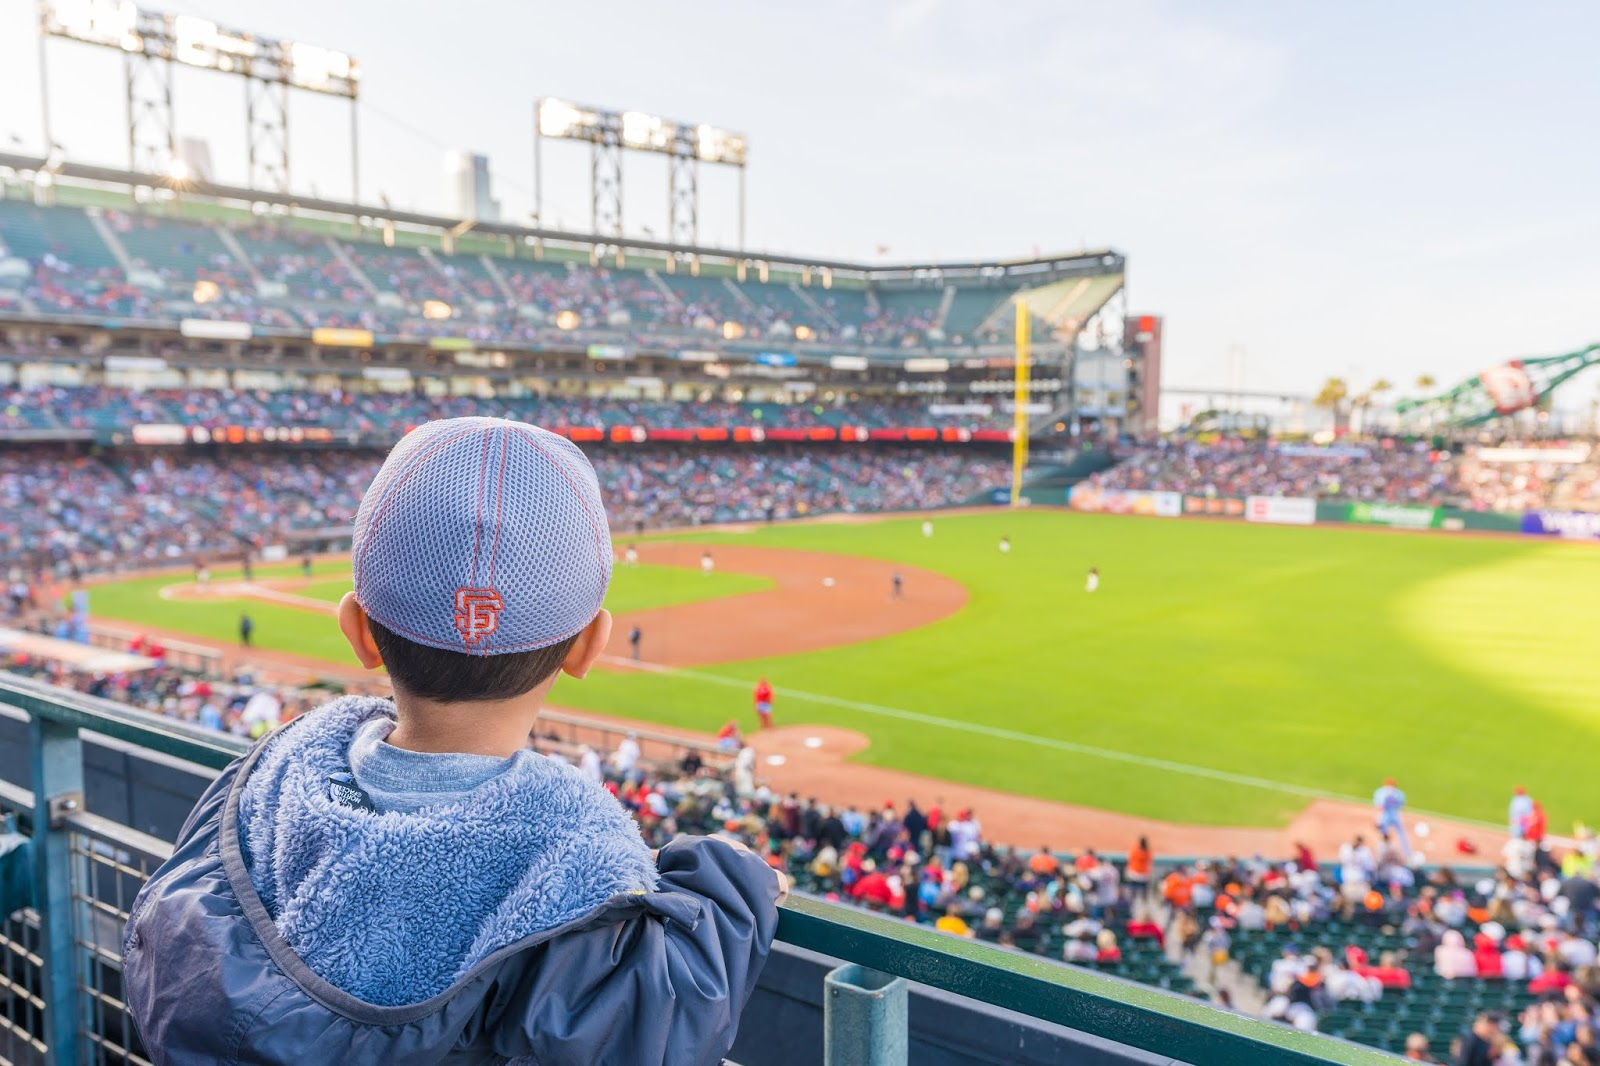 The Premium Experience at Oracle Park: A Look at the San ... on giants colors, giants park map, giants catch, giants flag, san francisco giants seating map, giants in history, the coliseum map, giants football team, giants victory parade, giants standings, giants parking map, giants jokes, giants head coach, giants field map, sf giants map, giants memes, giants super bowl, giants hat, giants coloring pages, giants emblem,